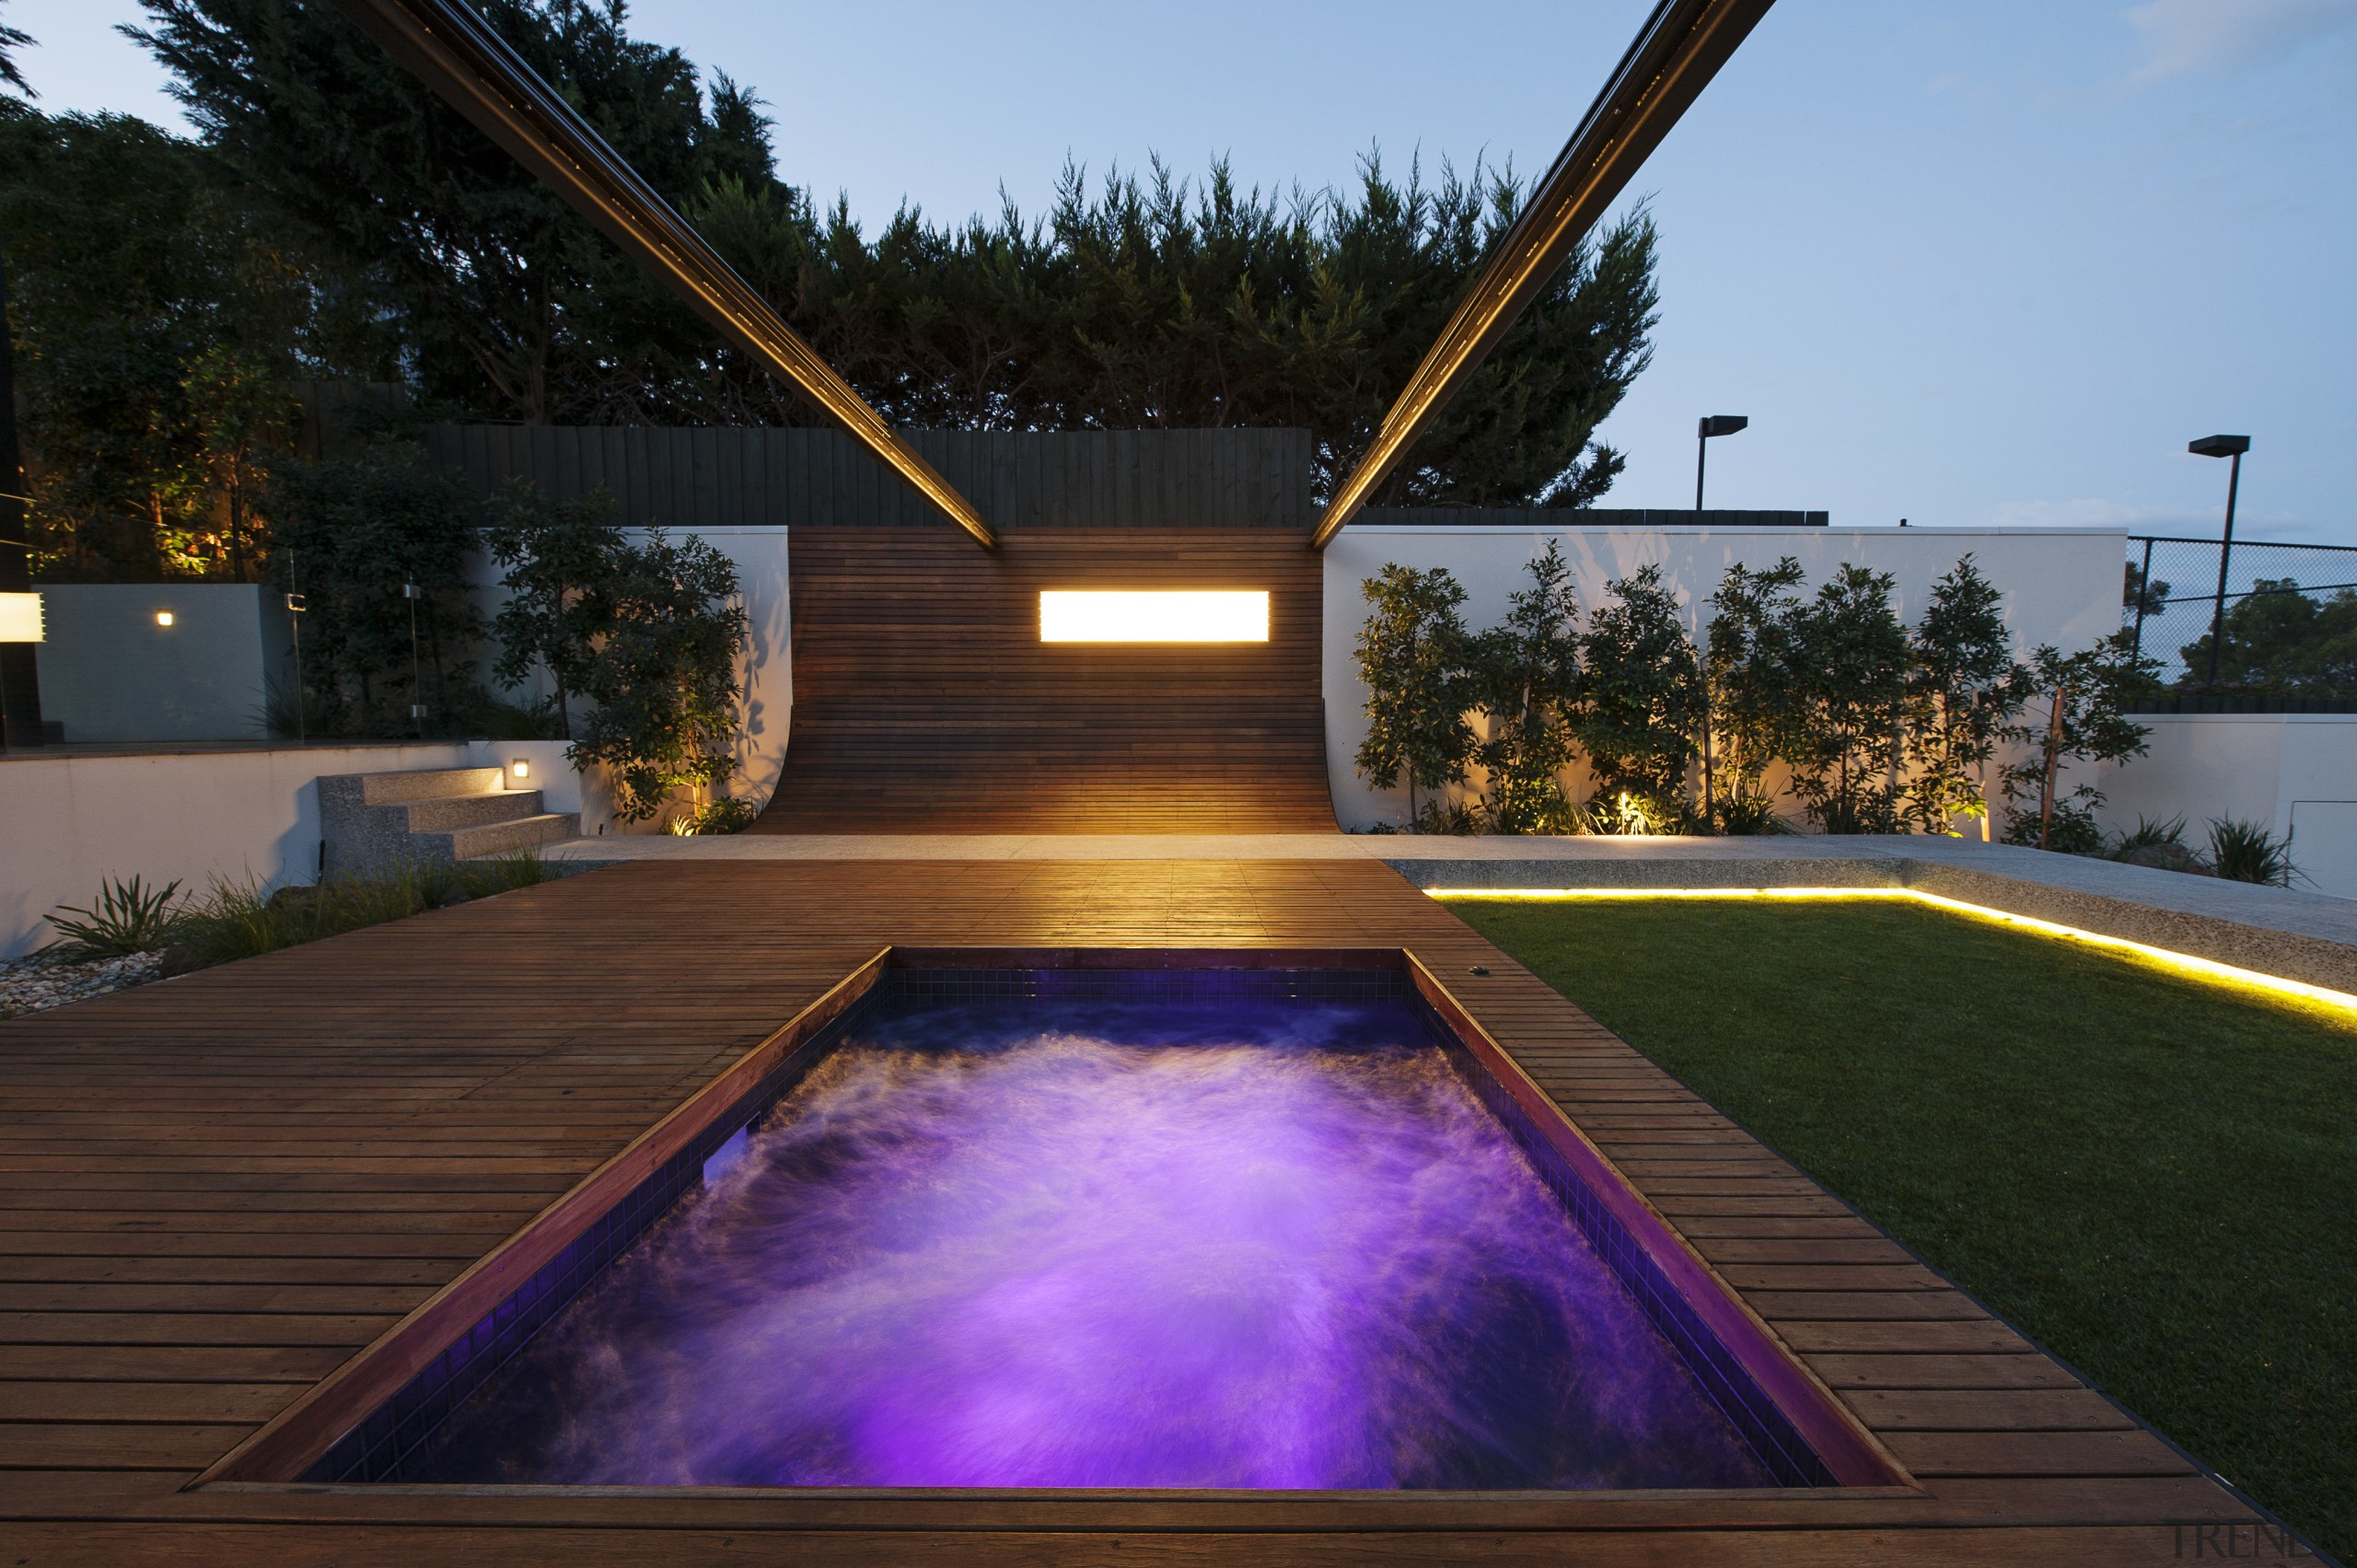 For this project, a steel arm rises up architecture, backyard, estate, home, house, landscape, landscape lighting, lighting, property, real estate, reflection, swimming pool, water, wood, black